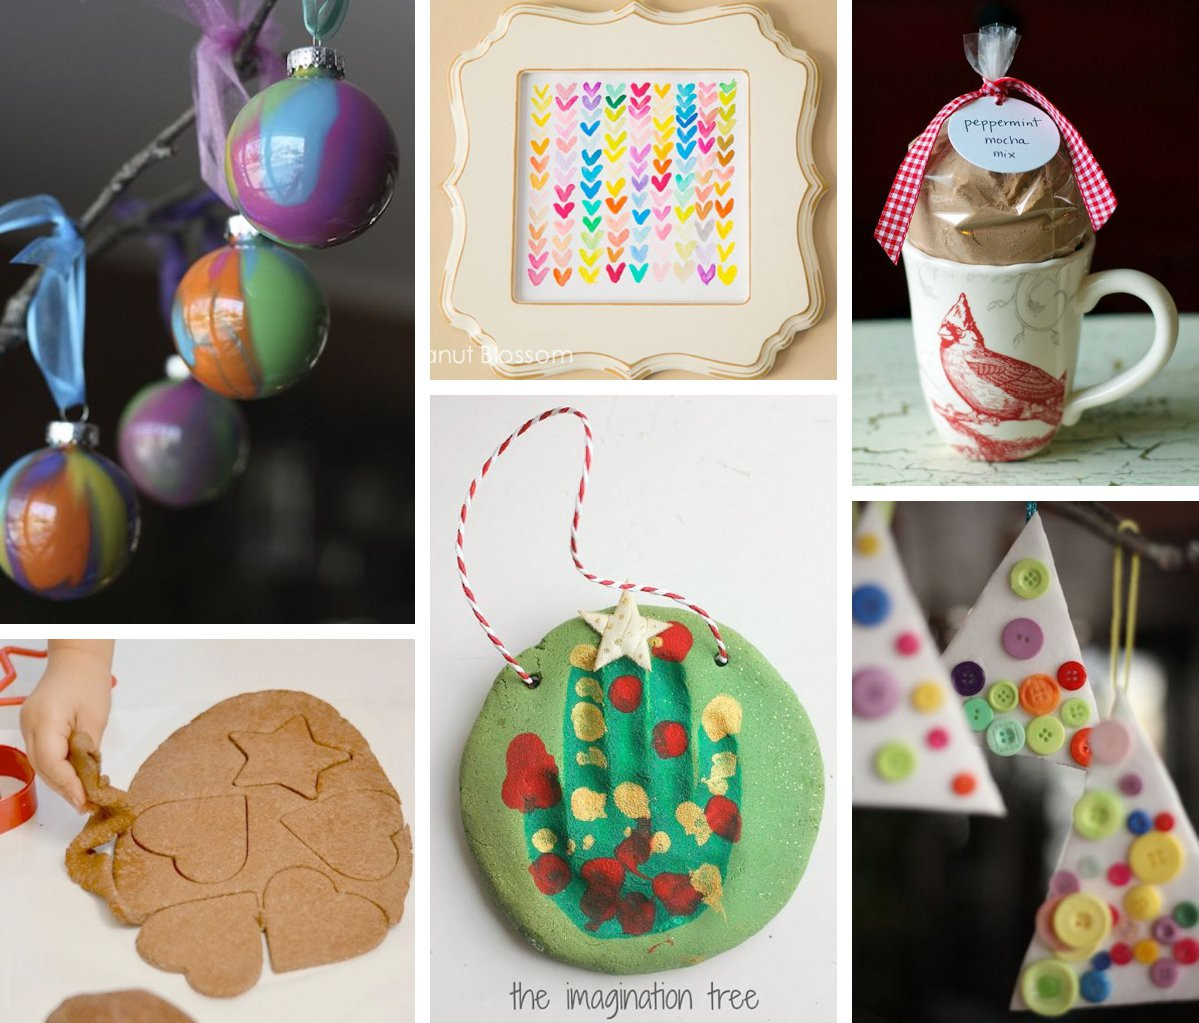 Best ideas about Homemade Christmas Gifts For Kids To Make . Save or Pin 10 DIY Holiday Gifts Kids Can Help Make Now.